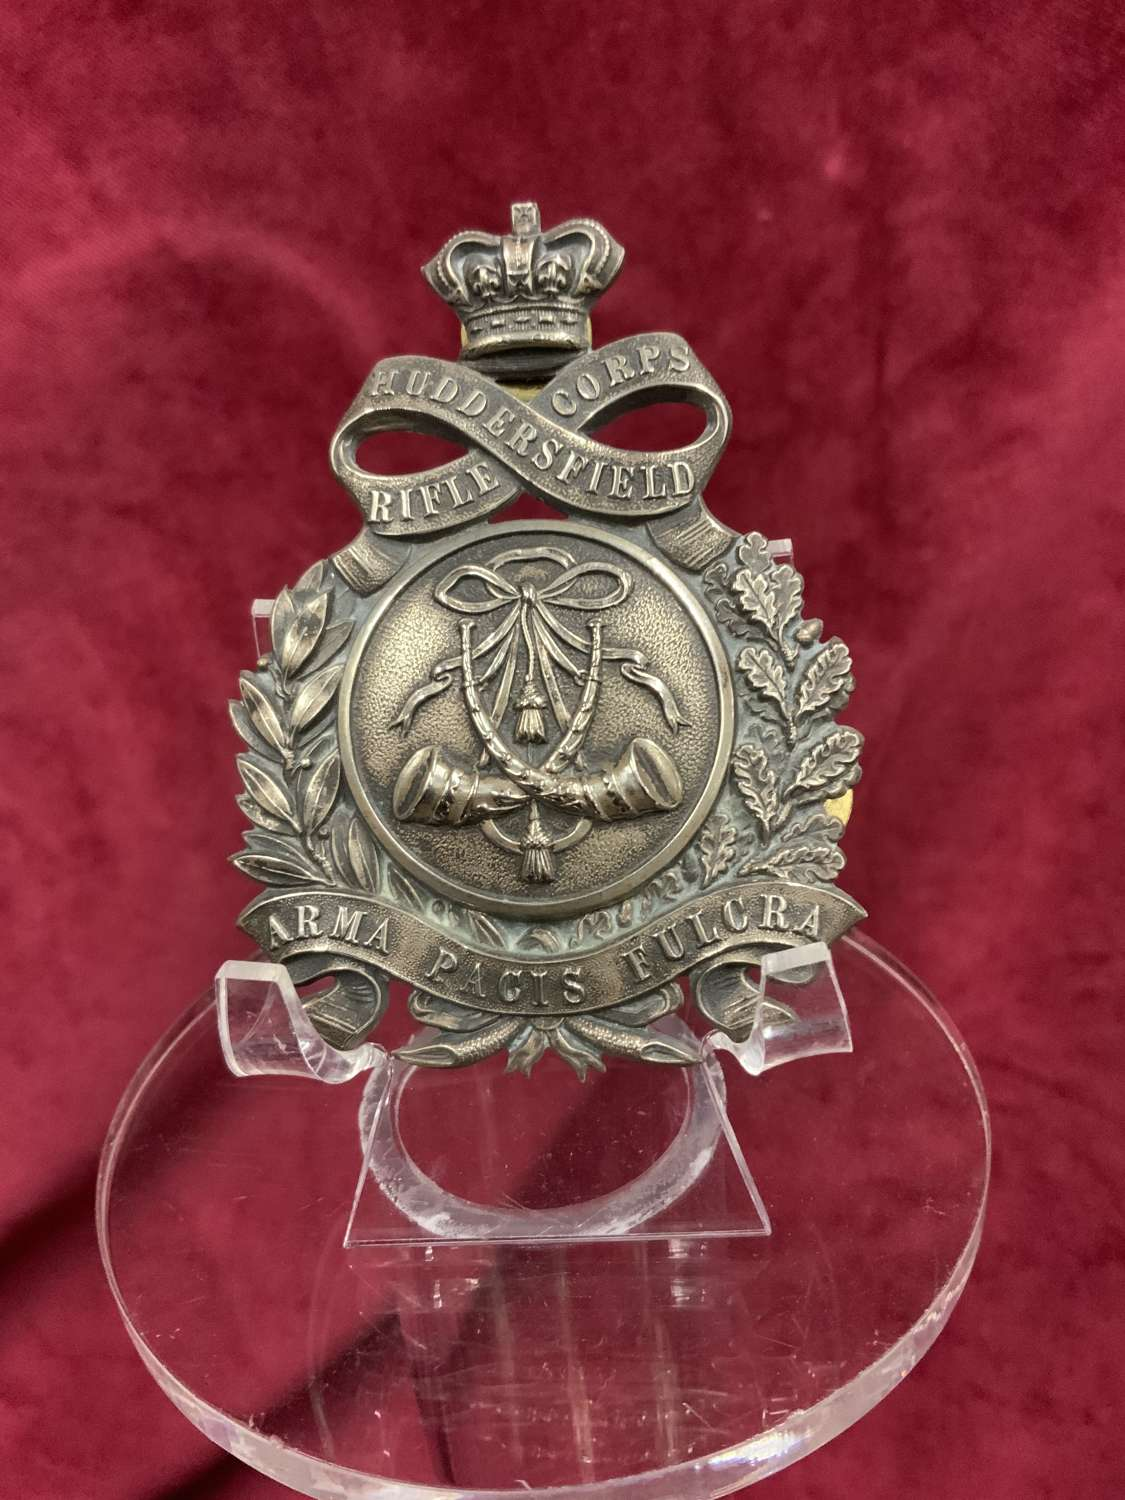 Huddersfield Rifle Corps, Shoulder Belt Plate, 1860's